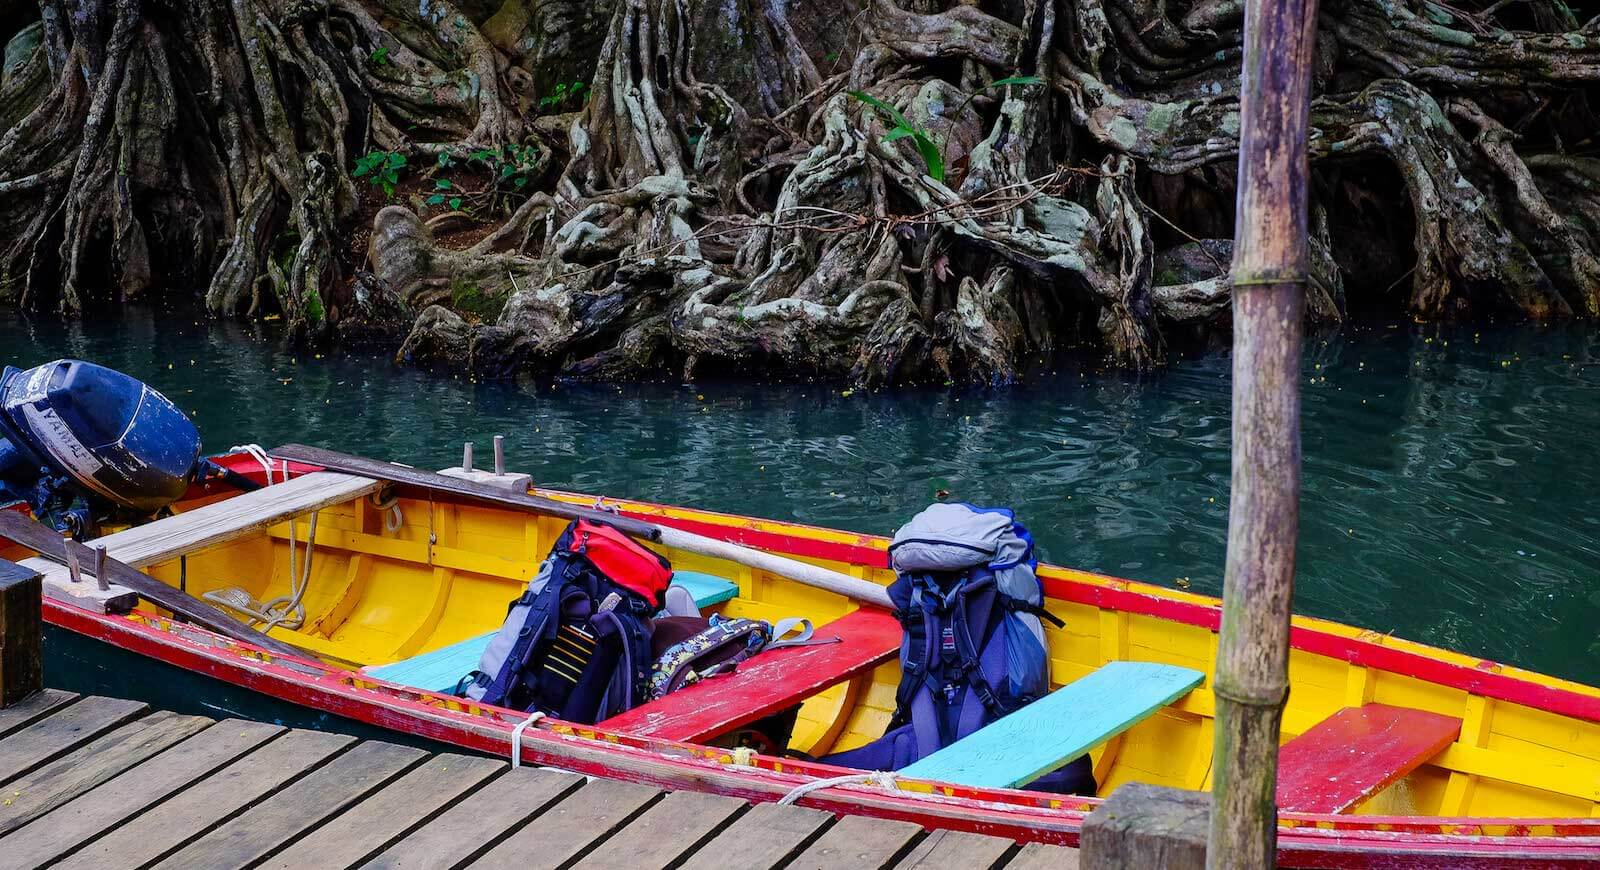 7 Must-Have Travel Accessories for India. Photo by Matthias Ripp (https://flic.kr/p/q2dgEV).